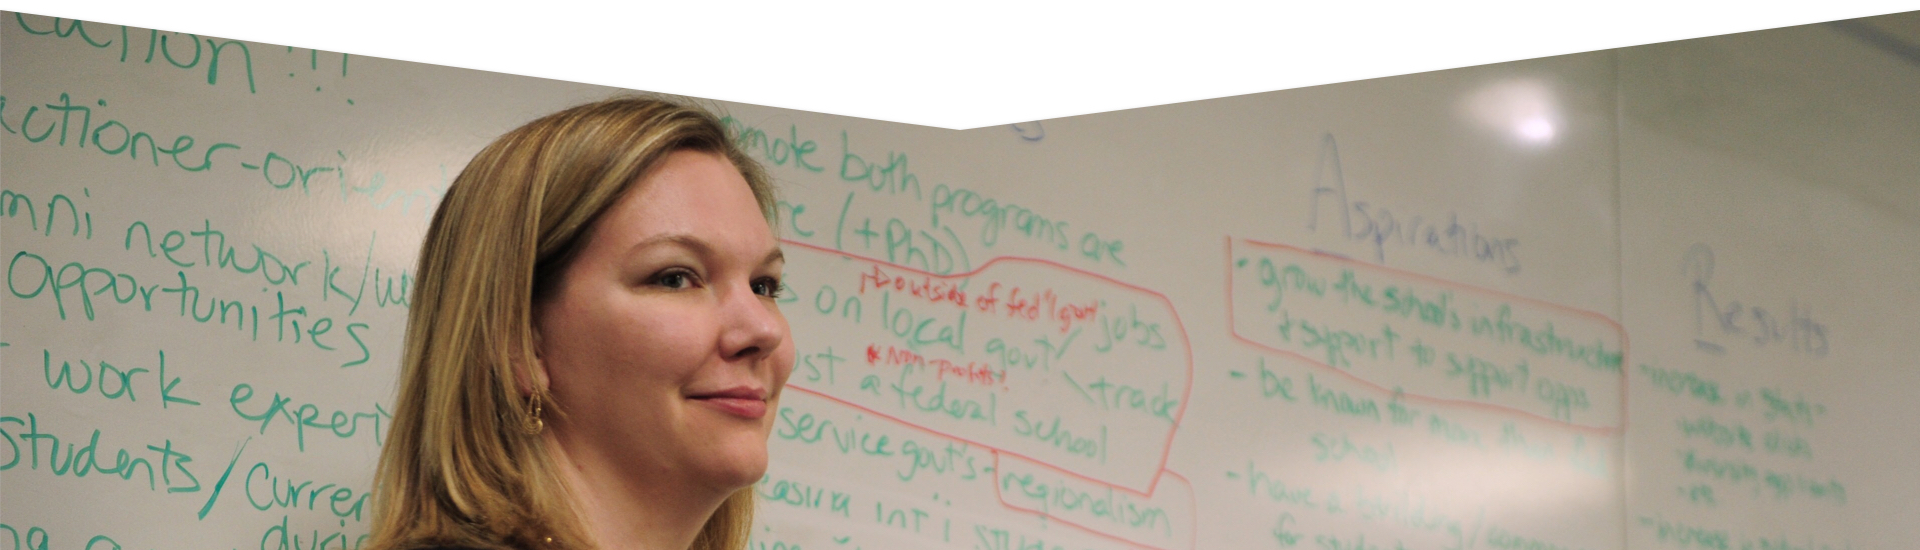 Image of white female in front of a whiteboard with many brainstormed words